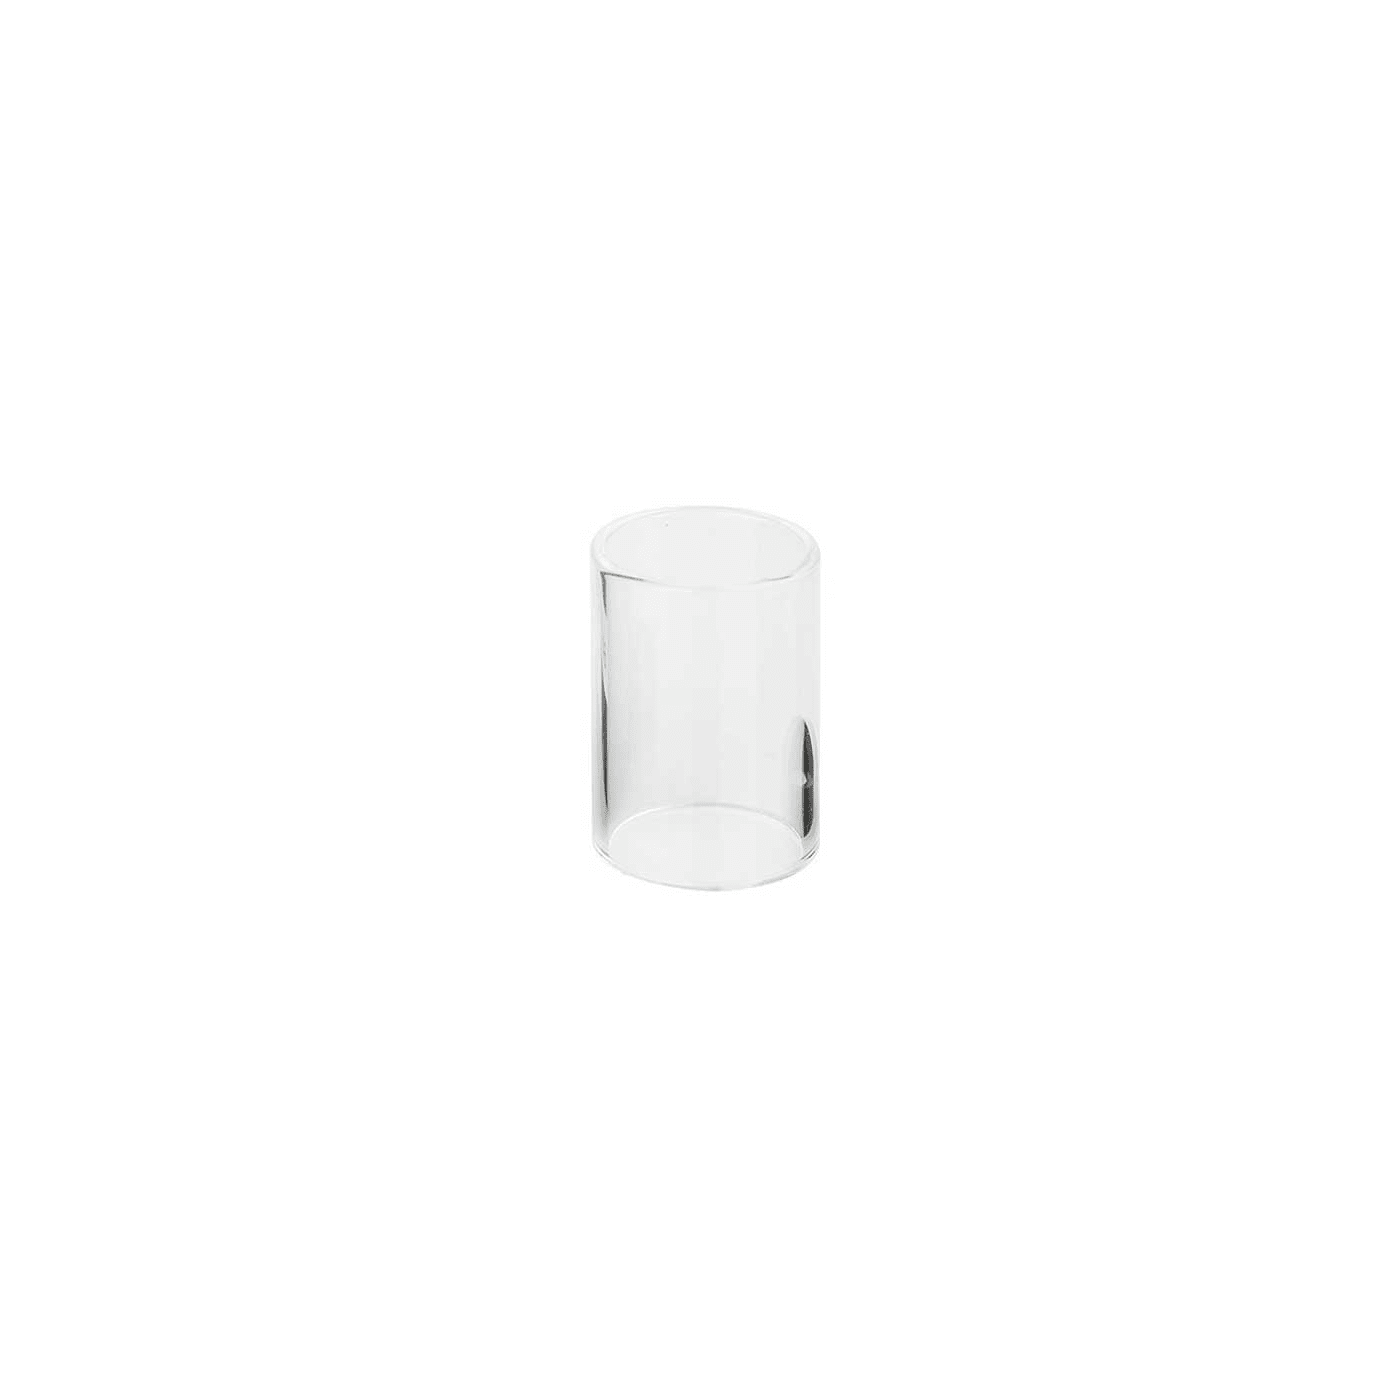 Vaporesso Orca Replacement Glass - 1 pack